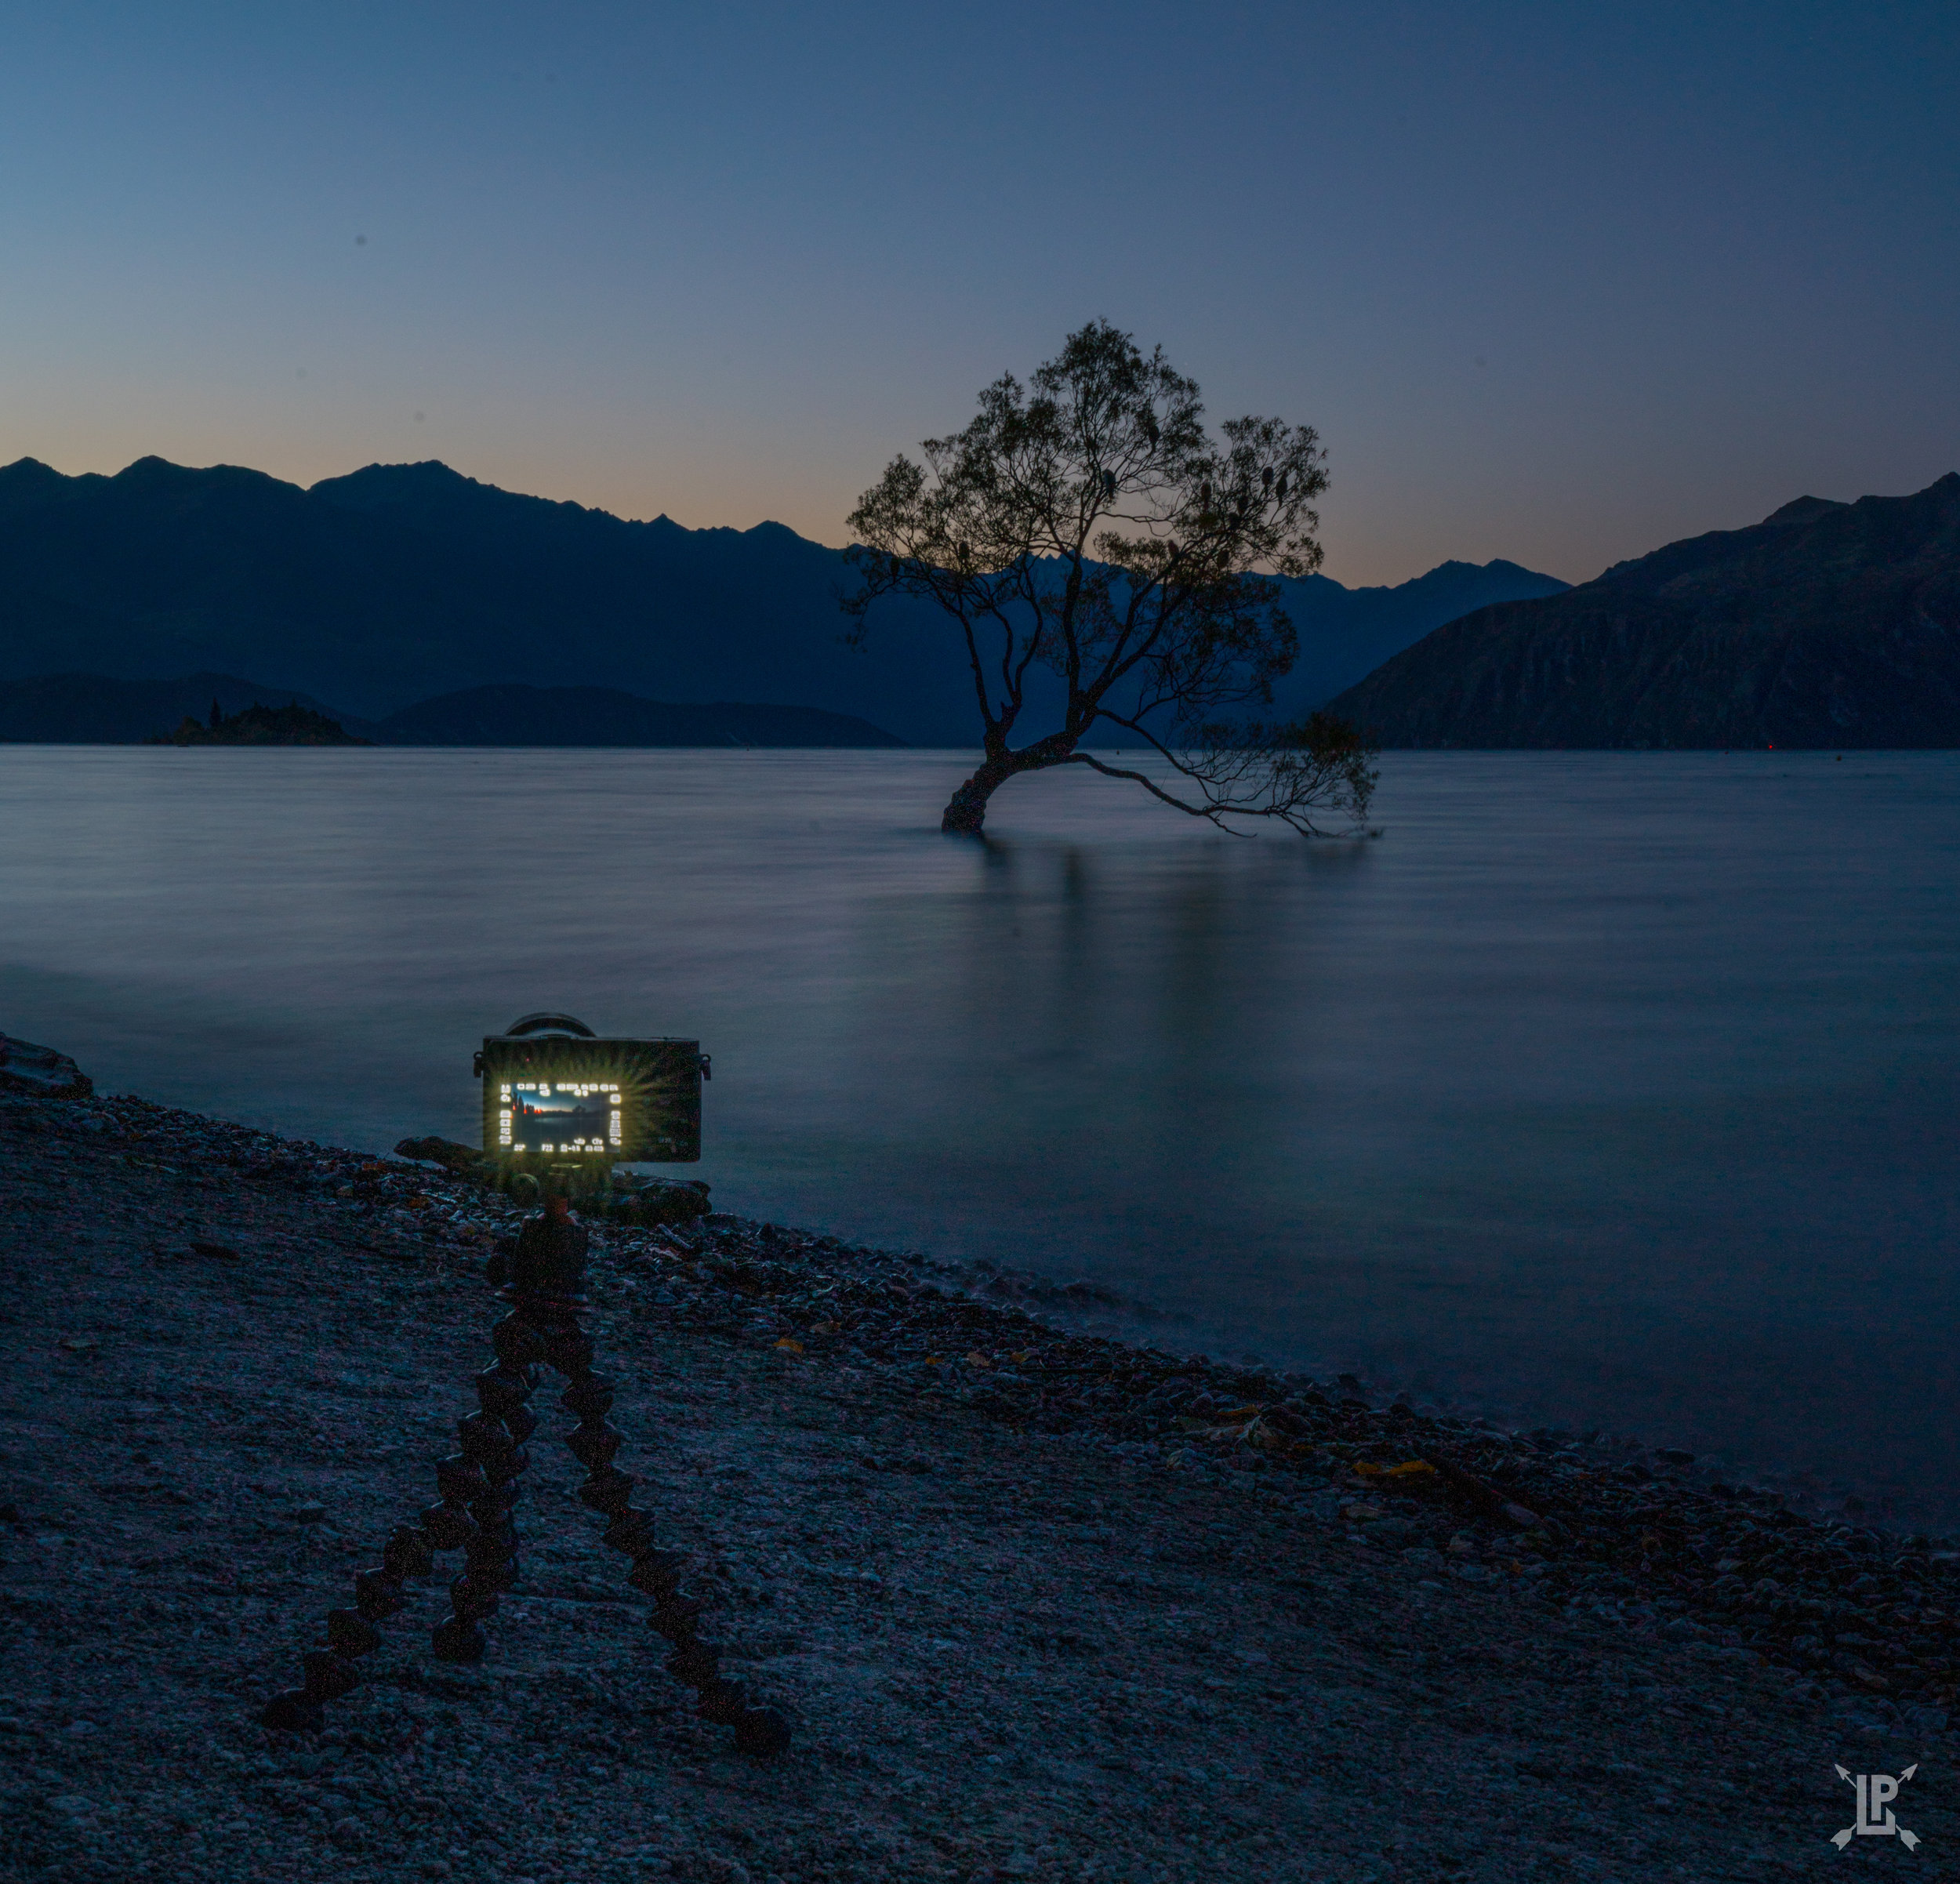 Using the  Joby Tripod  to shoot the Wanaka Tree in New Zealand